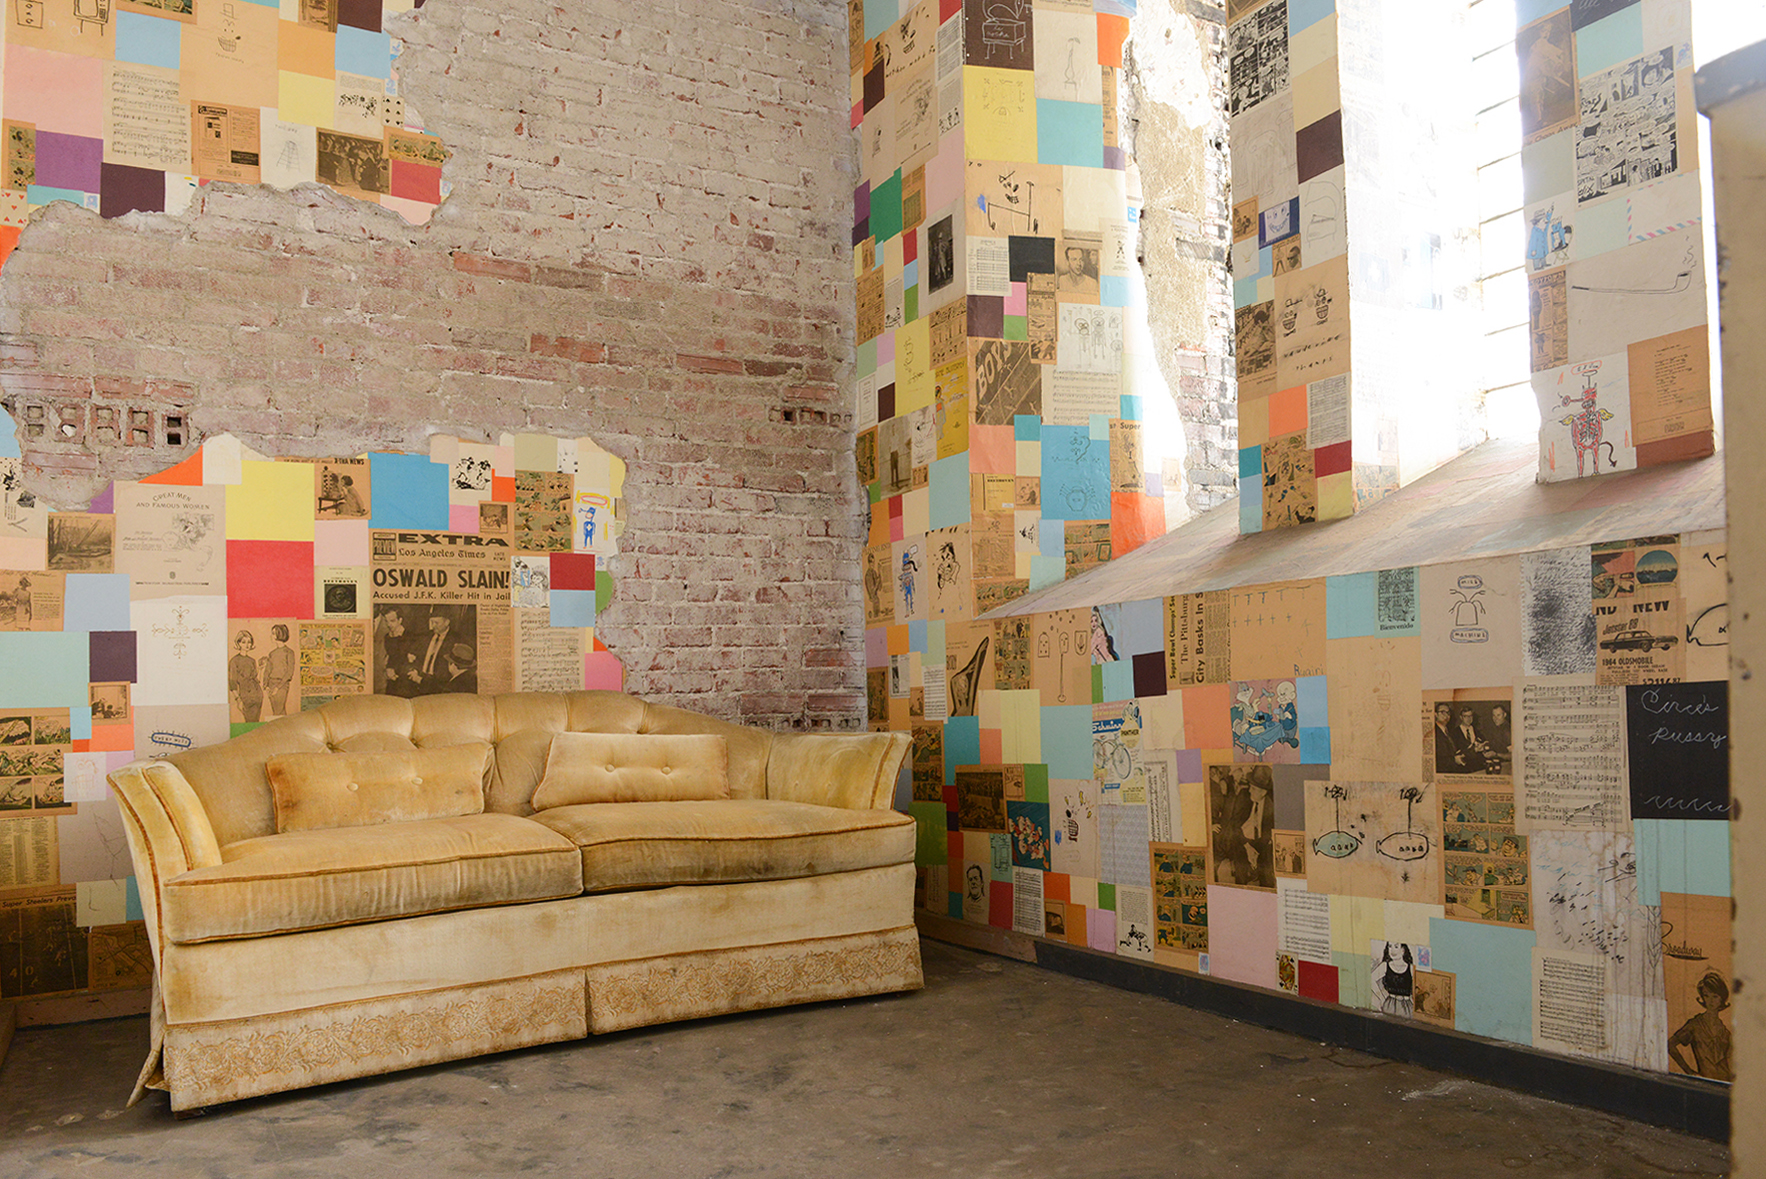 An Abandoned School Becomes A Place for Art, Community and Home via Design*Sponge